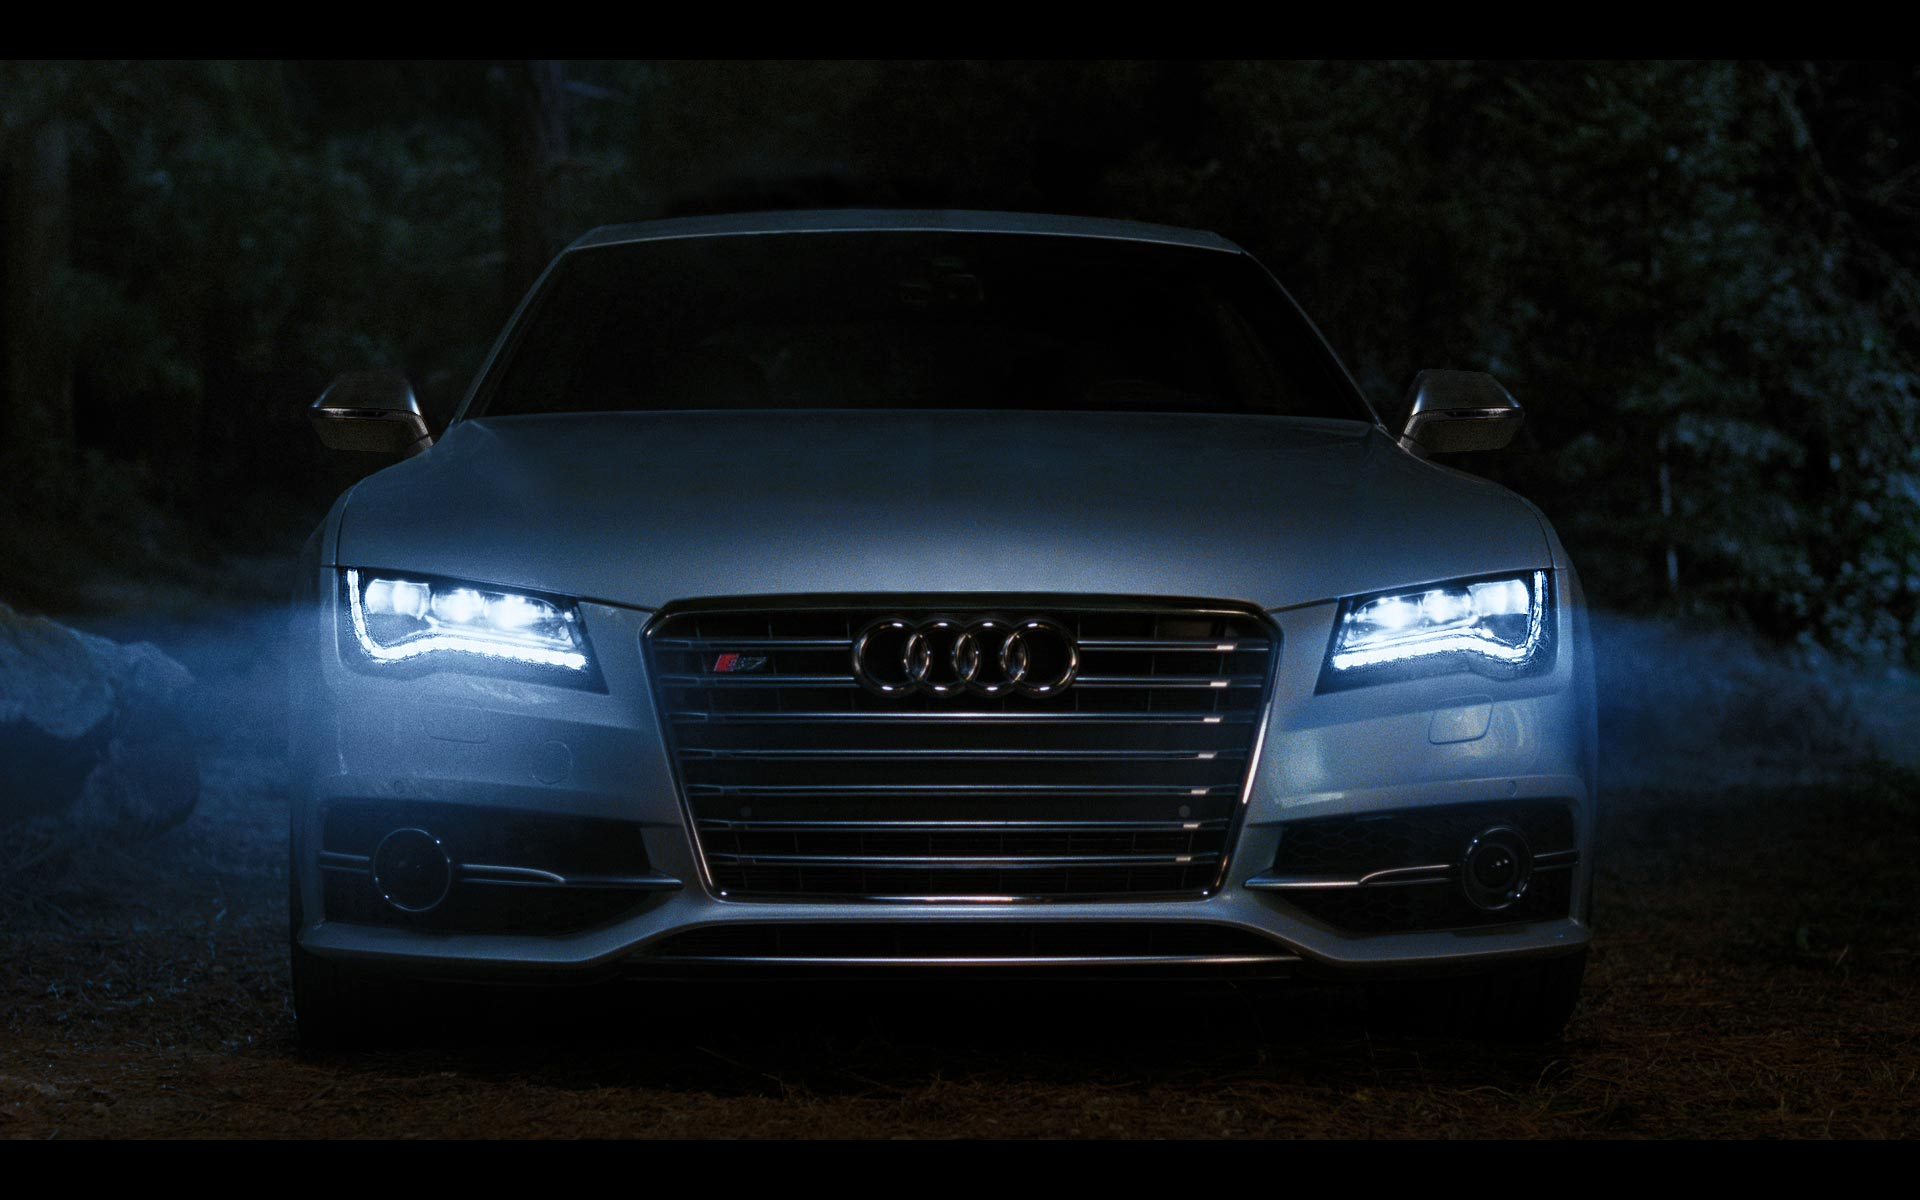 12622 2013 audi s7 hd wallpaper wallpaper place free download 2013 1920x1200